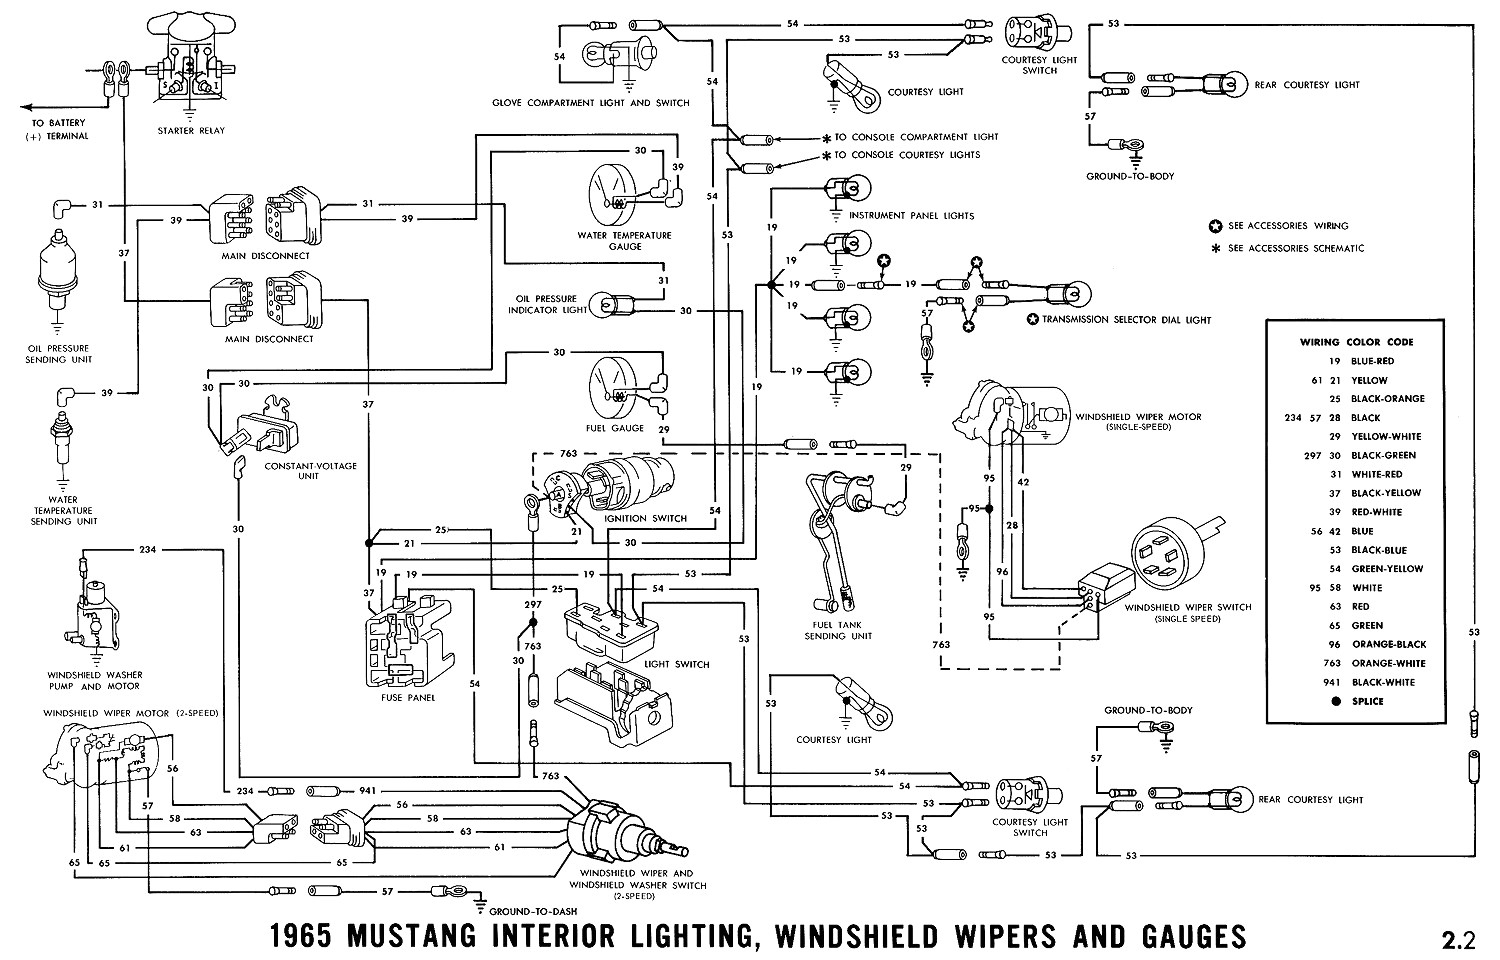 1965 mustang ignition wiring diagram Download-1965 Mustang Ignition Wiring Diagram 1967 Mustang Wiring Diagram Pdf Wire Data U2022 Rh Coller 3-s